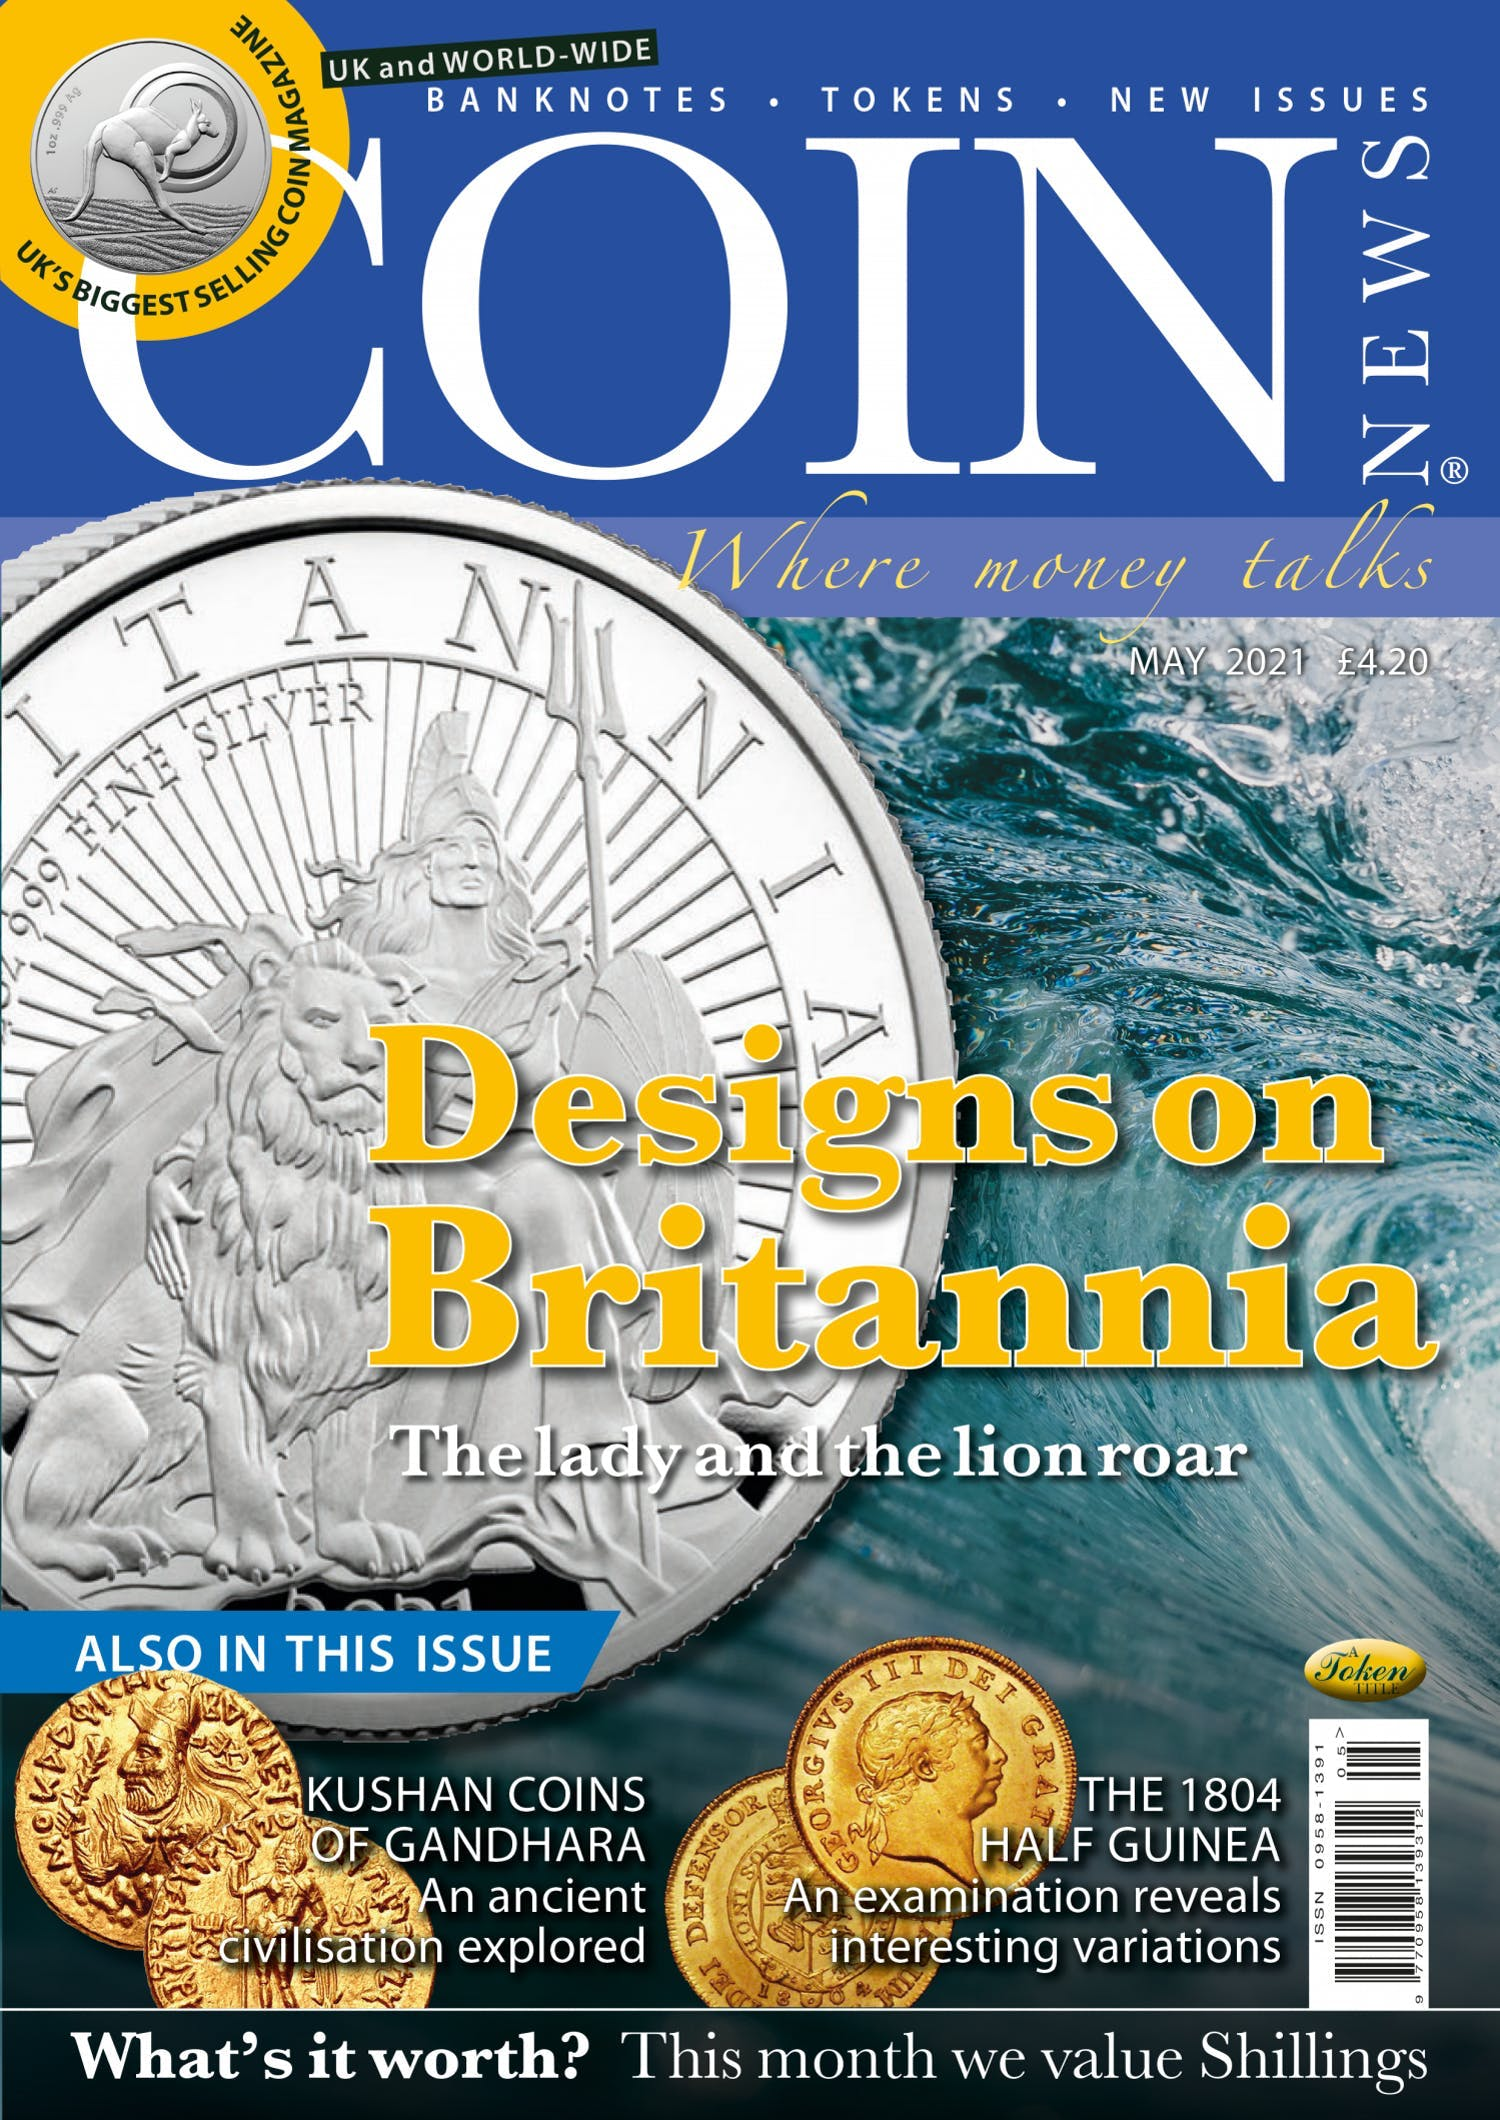 The front cover of Coin News, May 2021 - Volume 58, Number 5